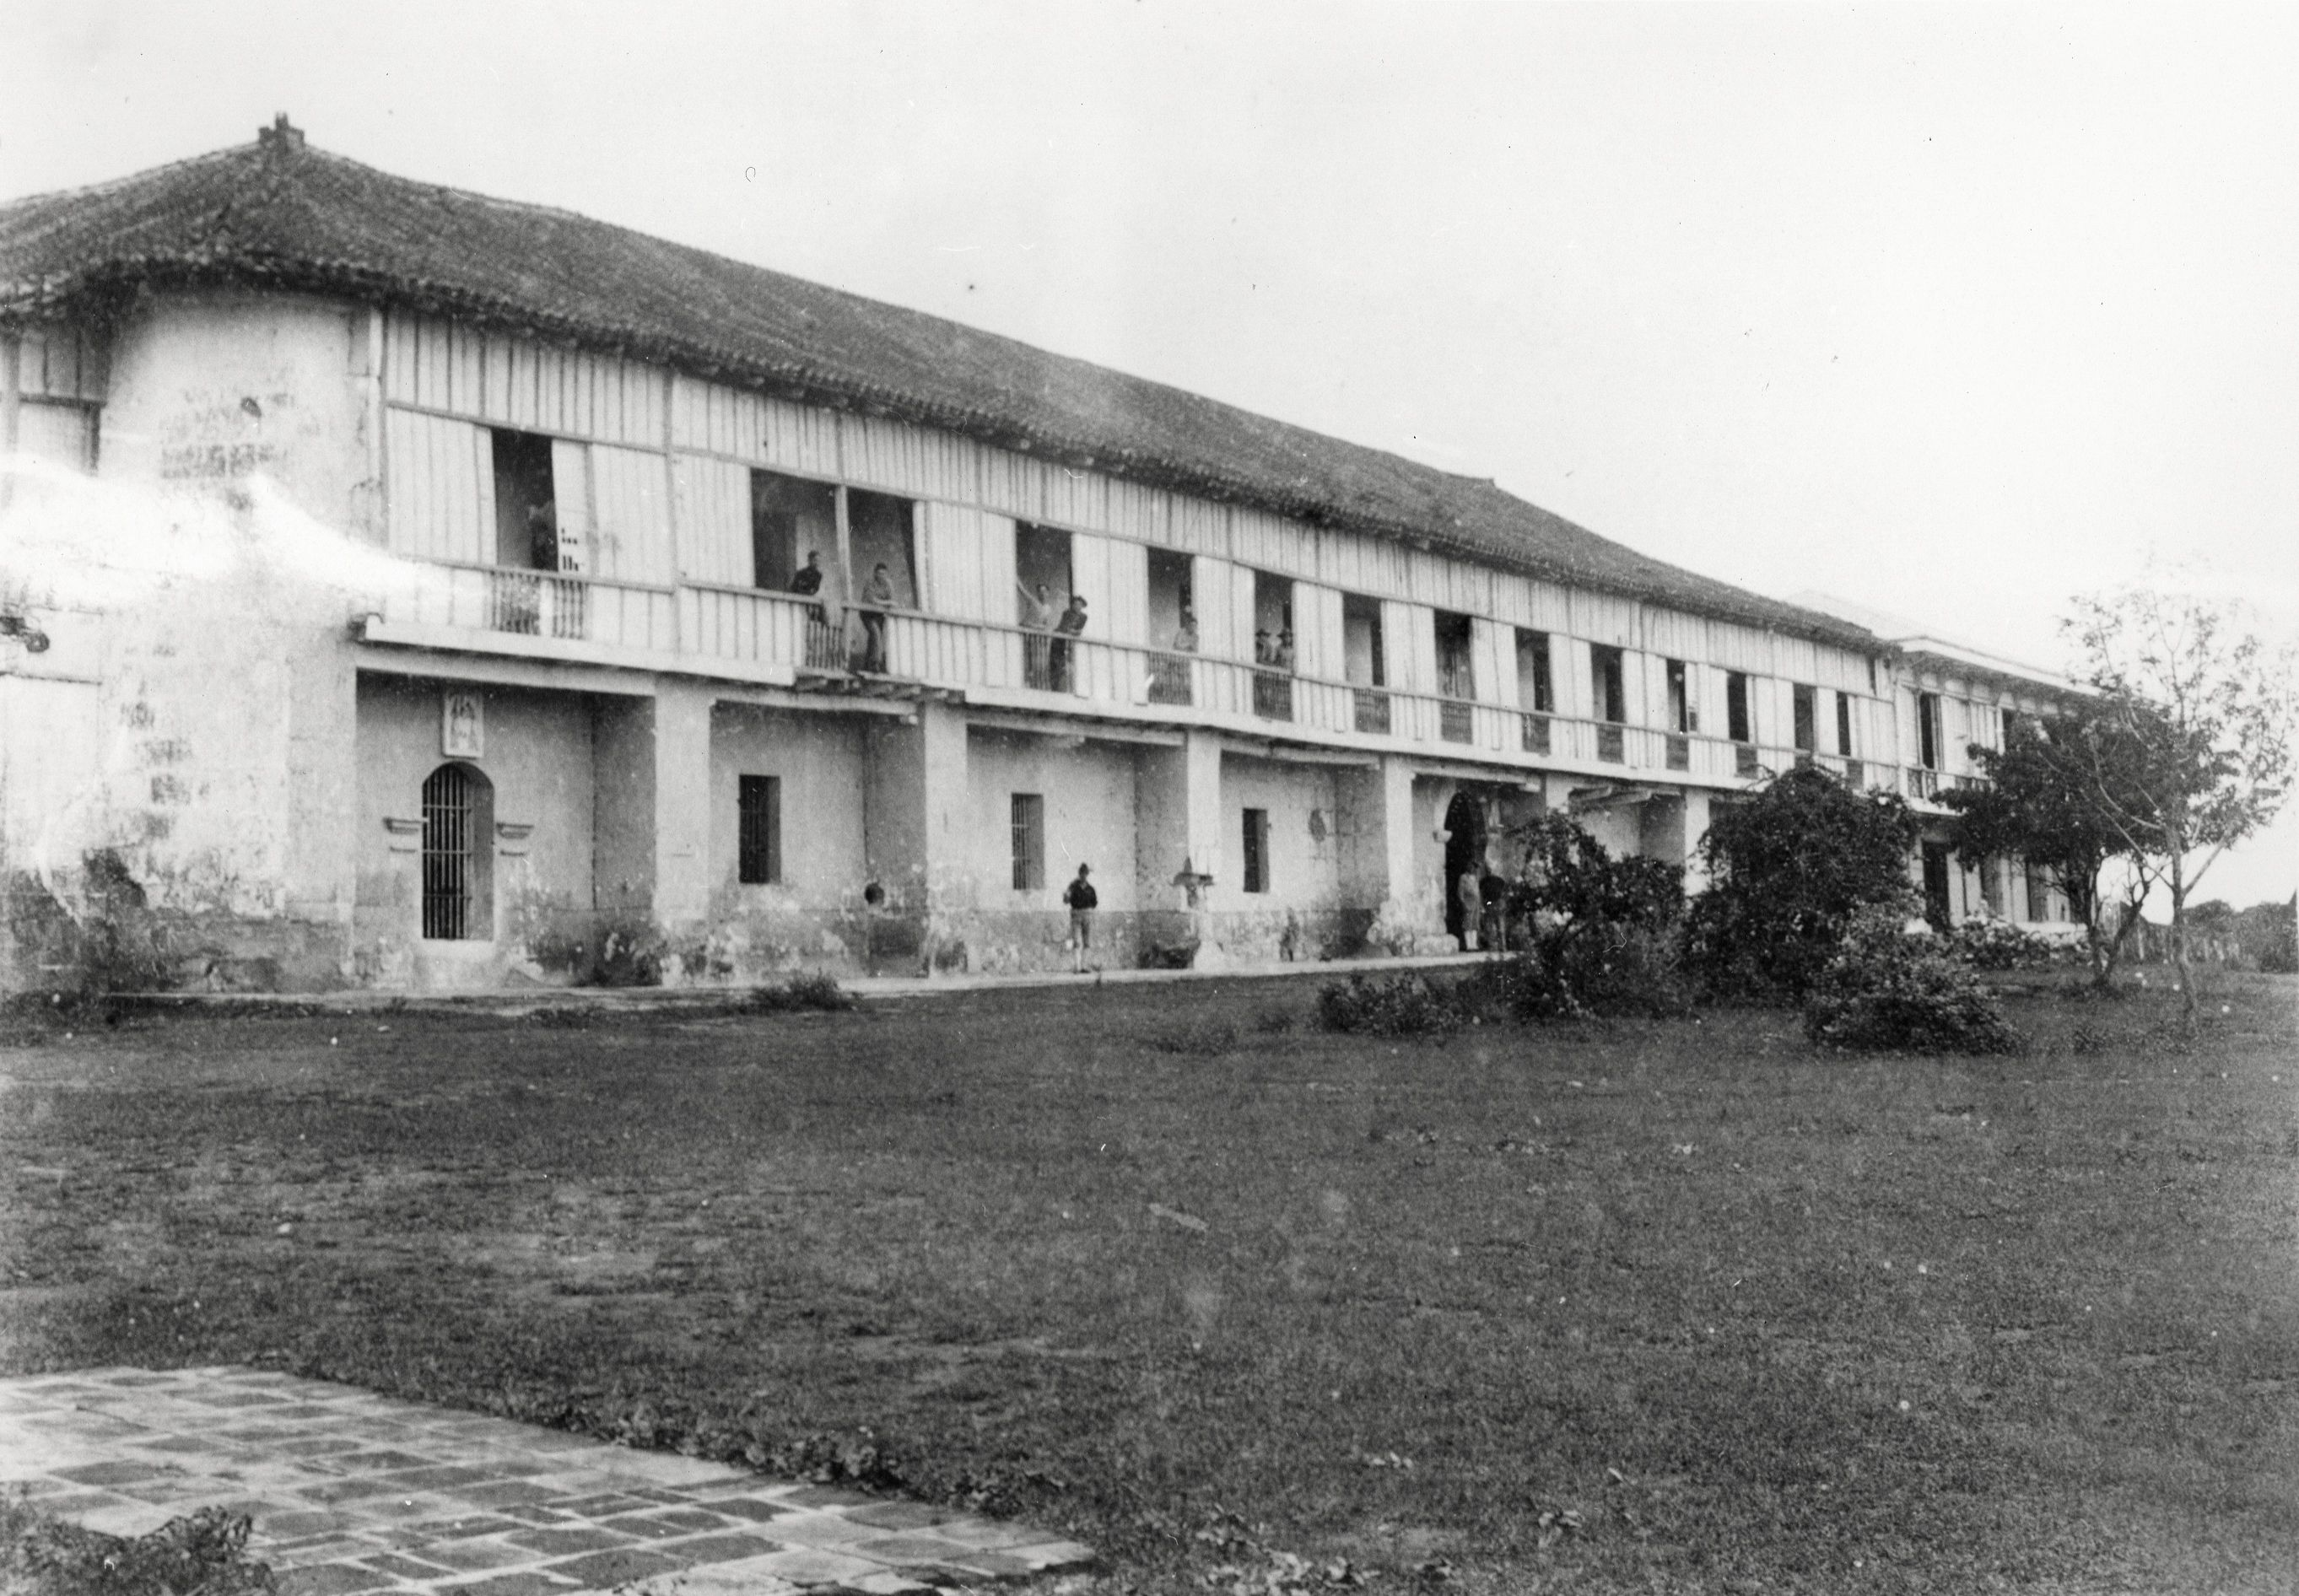 Old Spanish barracks at Ft. Santiago used by American military forces after 1899.